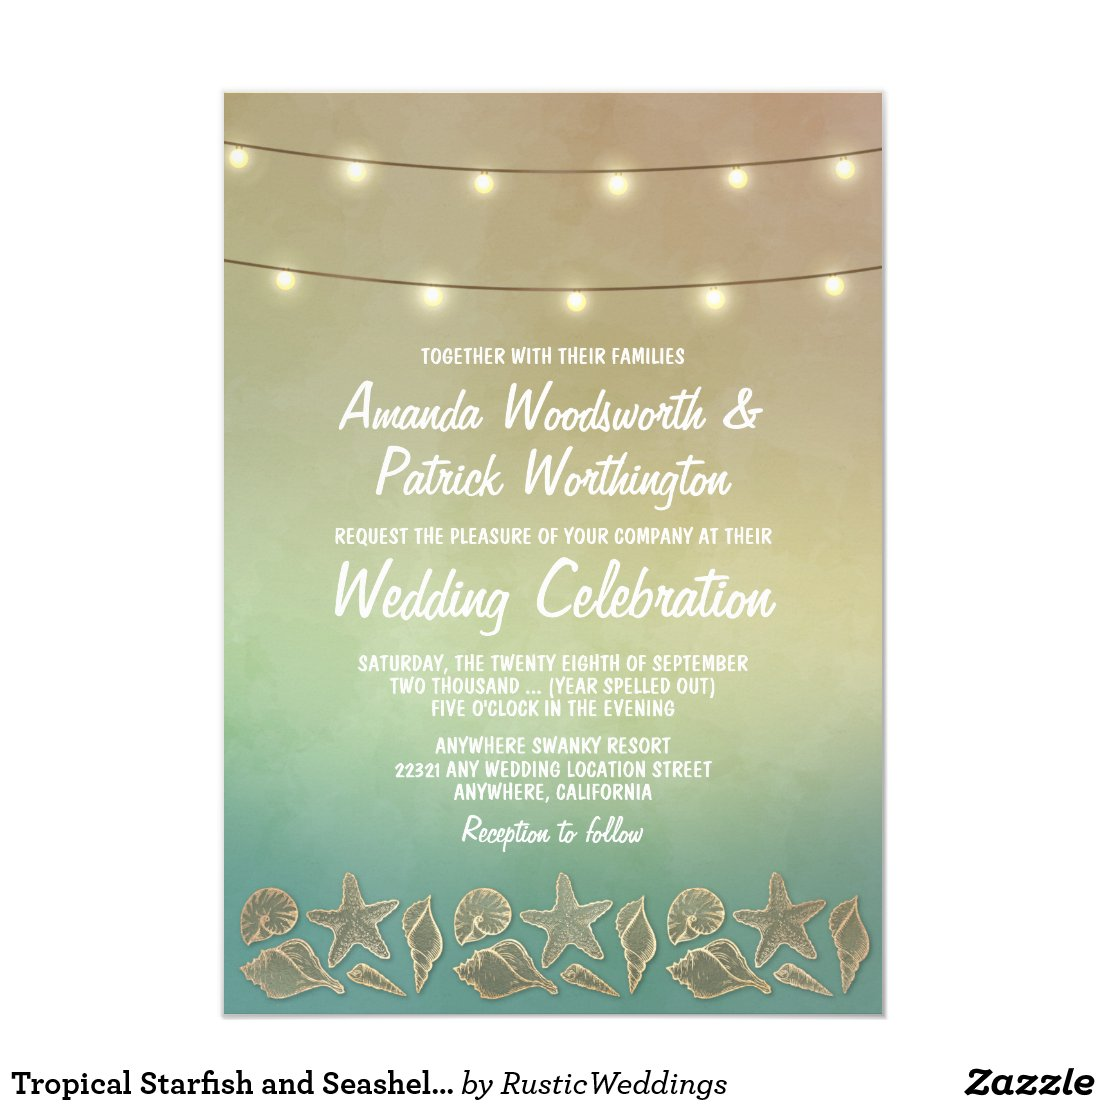 Tropical Starfish and Seashell Wedding Invitations